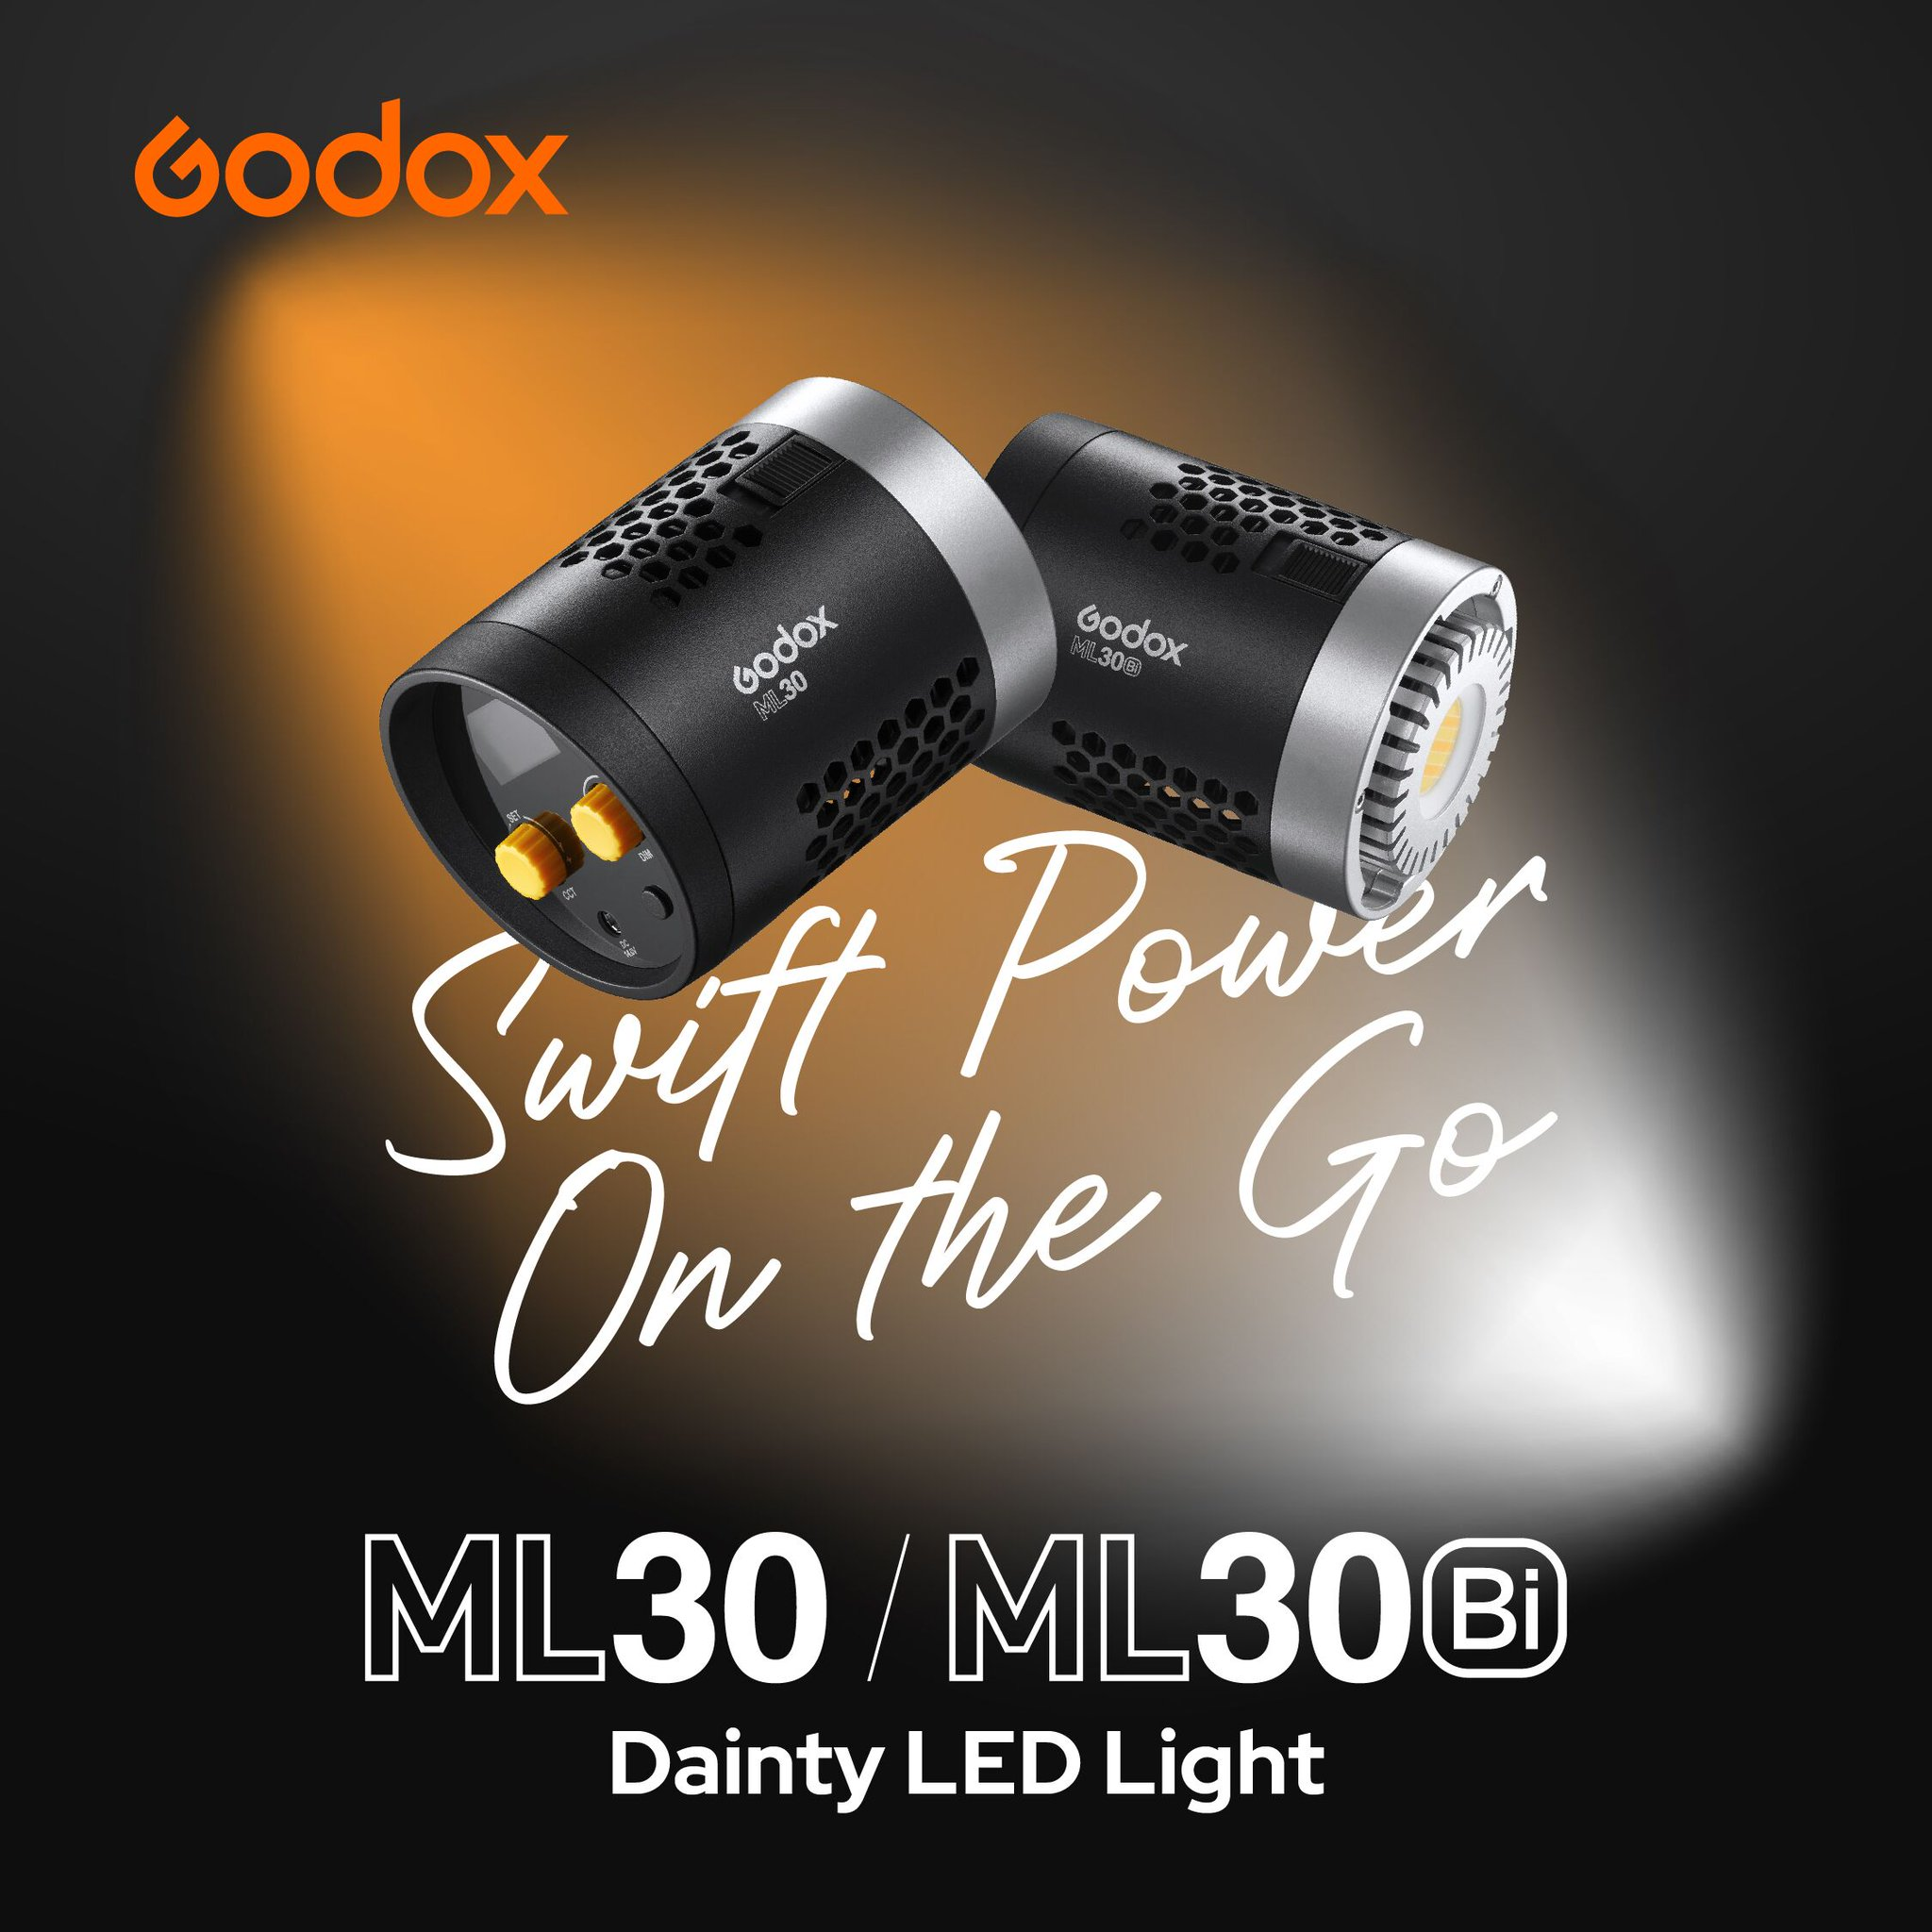 Swift Power on the go! Dainty LED Light #ML30 & #ML30Bi are the smallest COB lights in Godox lighting range, just like a portable flashlight on call at any minutes! Wherever you are, you can instantly use them to back up the lighting with minimal space taking🧡 https://t.co/VTy7F0rb52